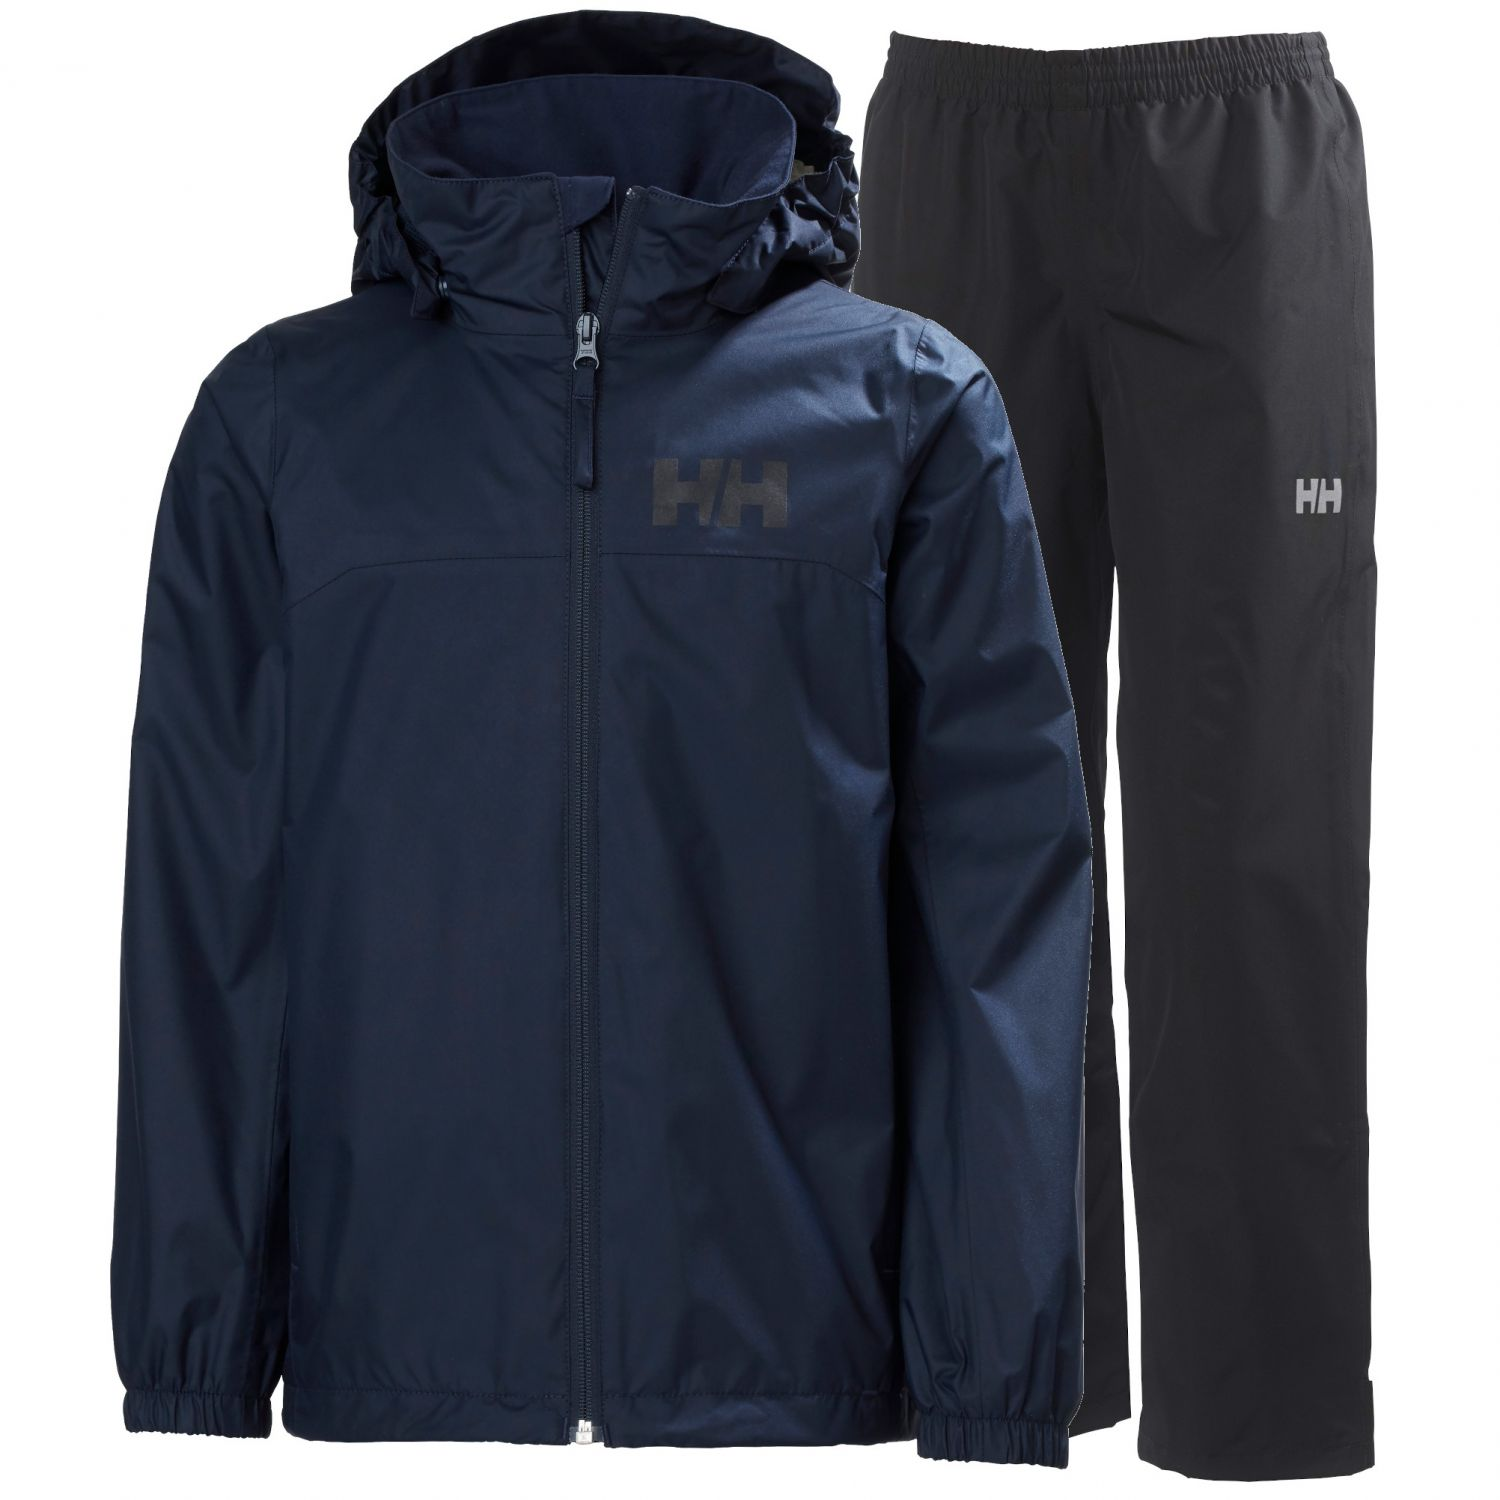 Helly Hansen Urban/Dubliner regnsæt, junior, navy/sort